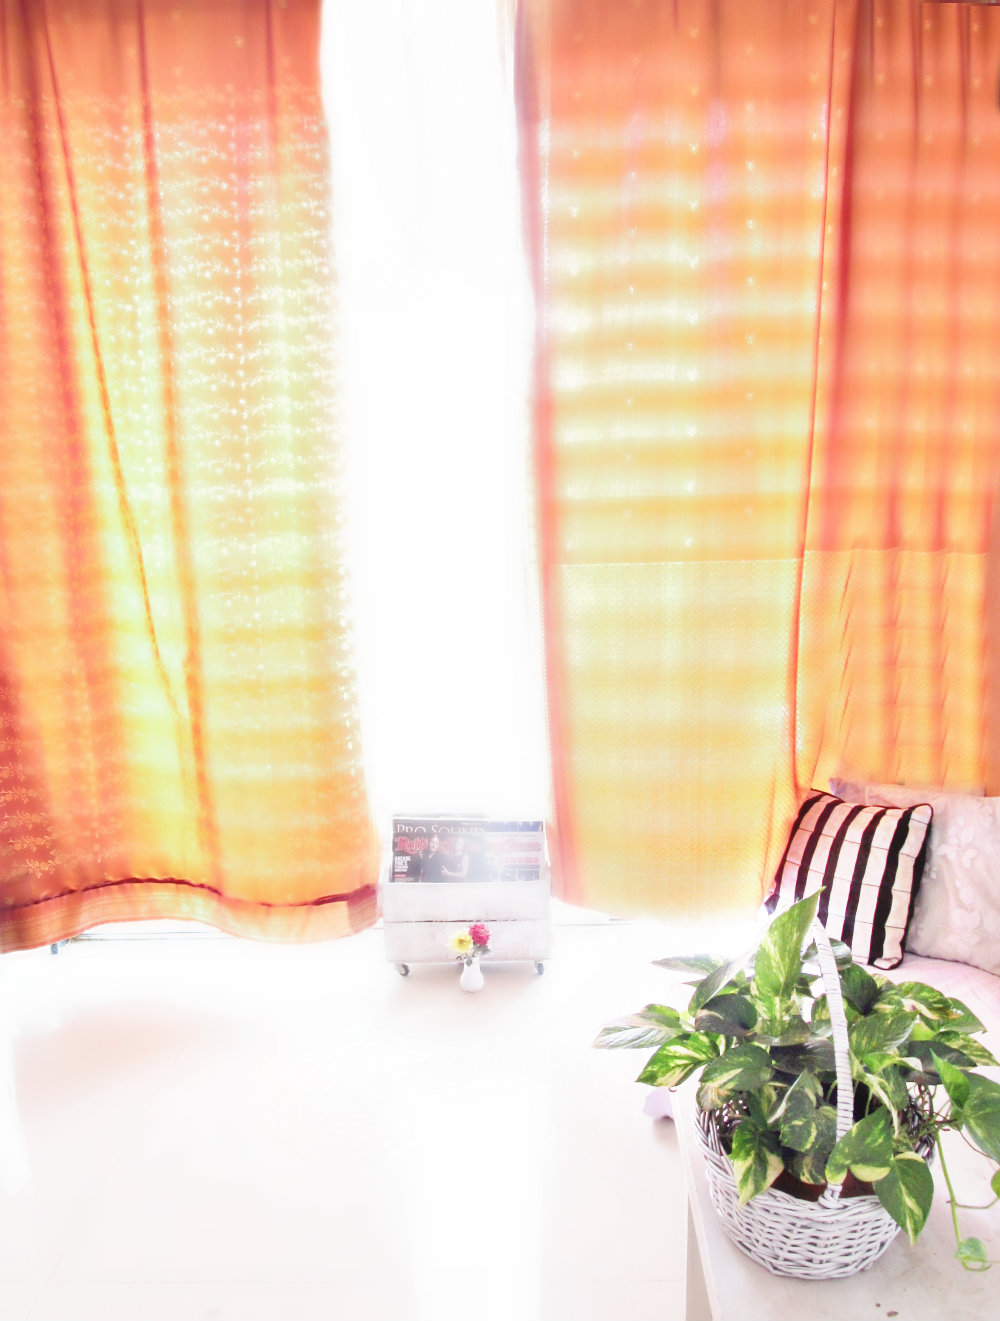 crazy aqua inspiration ideas curtain curtains enjoyable and orange tangerine